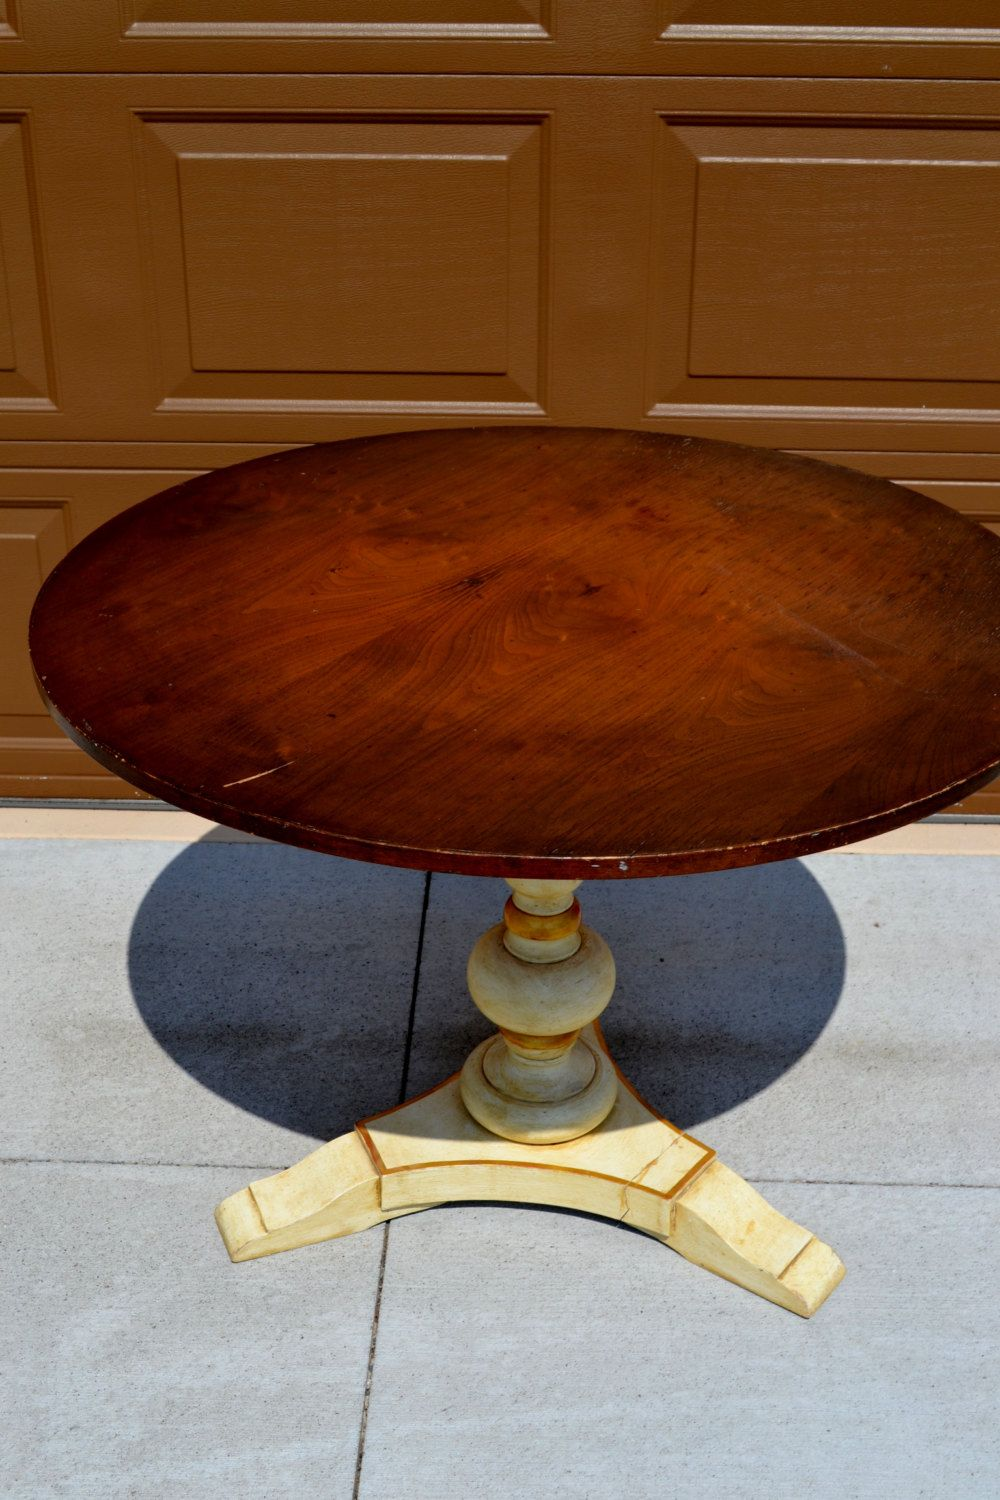 Round game tables - John Widdicomb Style Vintage Round Pedestal Table Vintage Round Game Table High End Round Table With Wooden Top Luxury Brand Round Tab